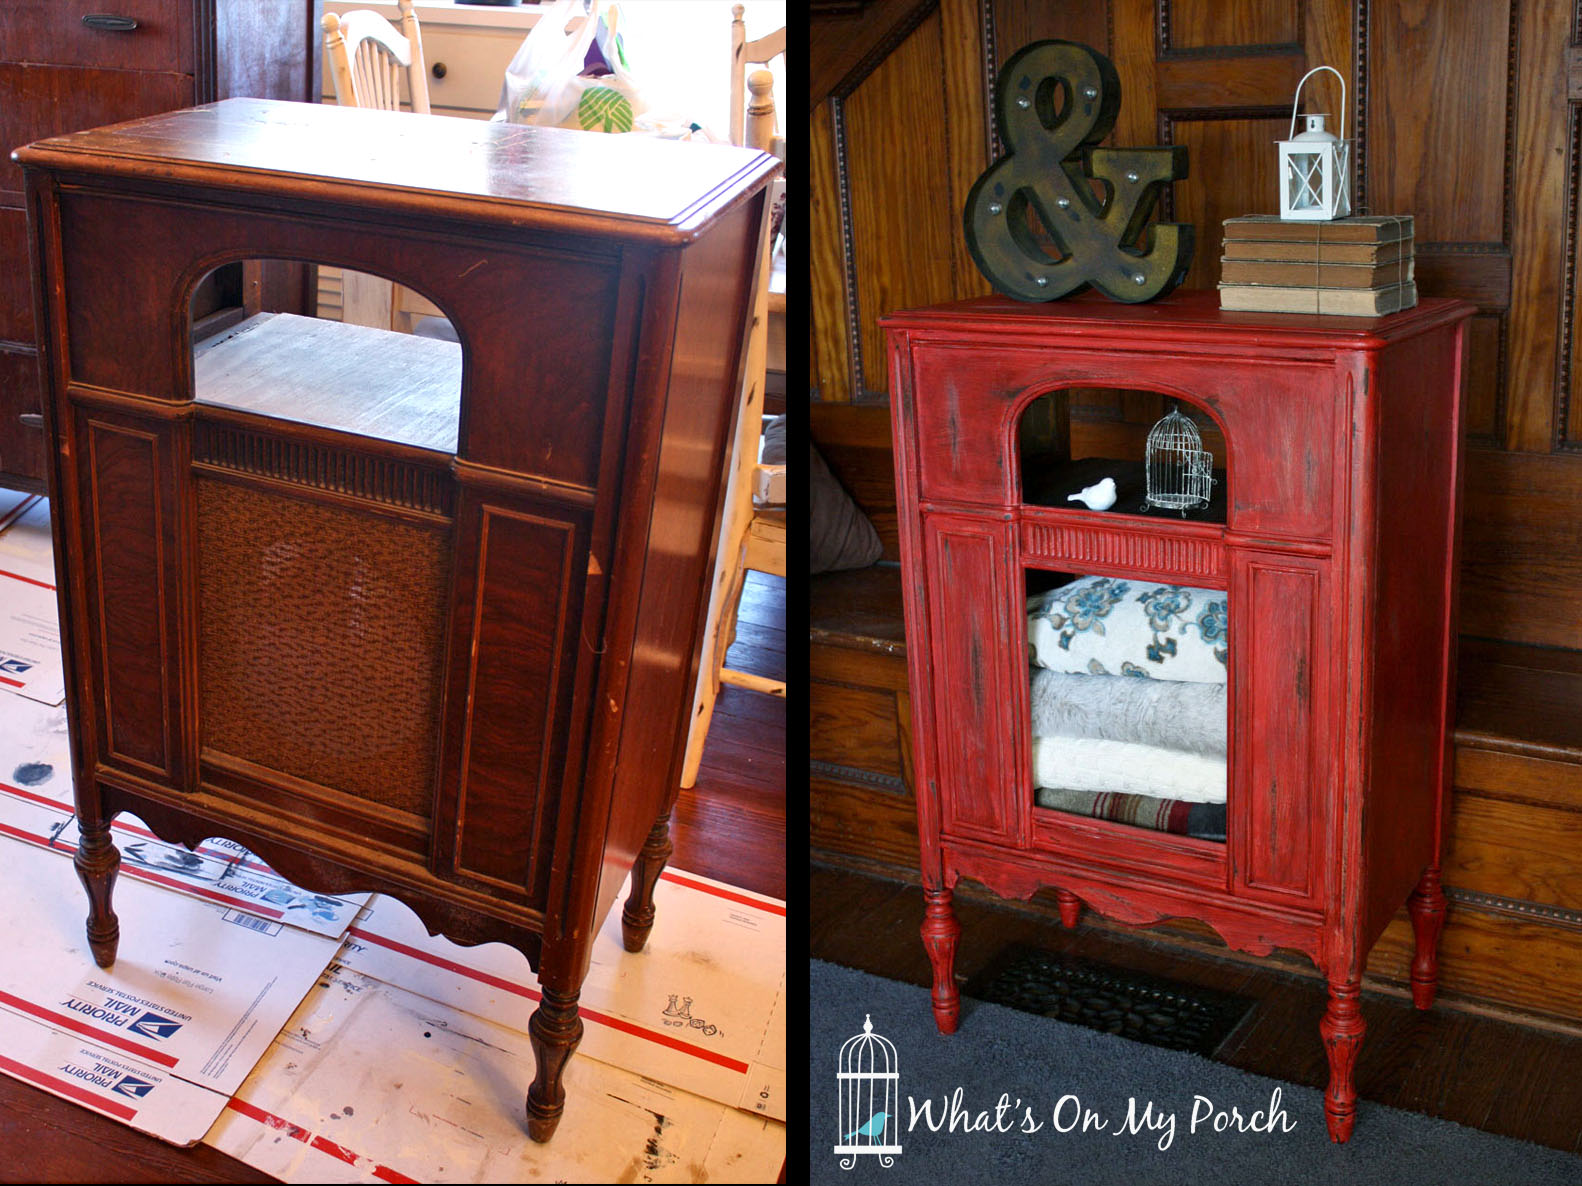 Red Radio Cabinet - What's On My Porch: Red Radio Cabinet